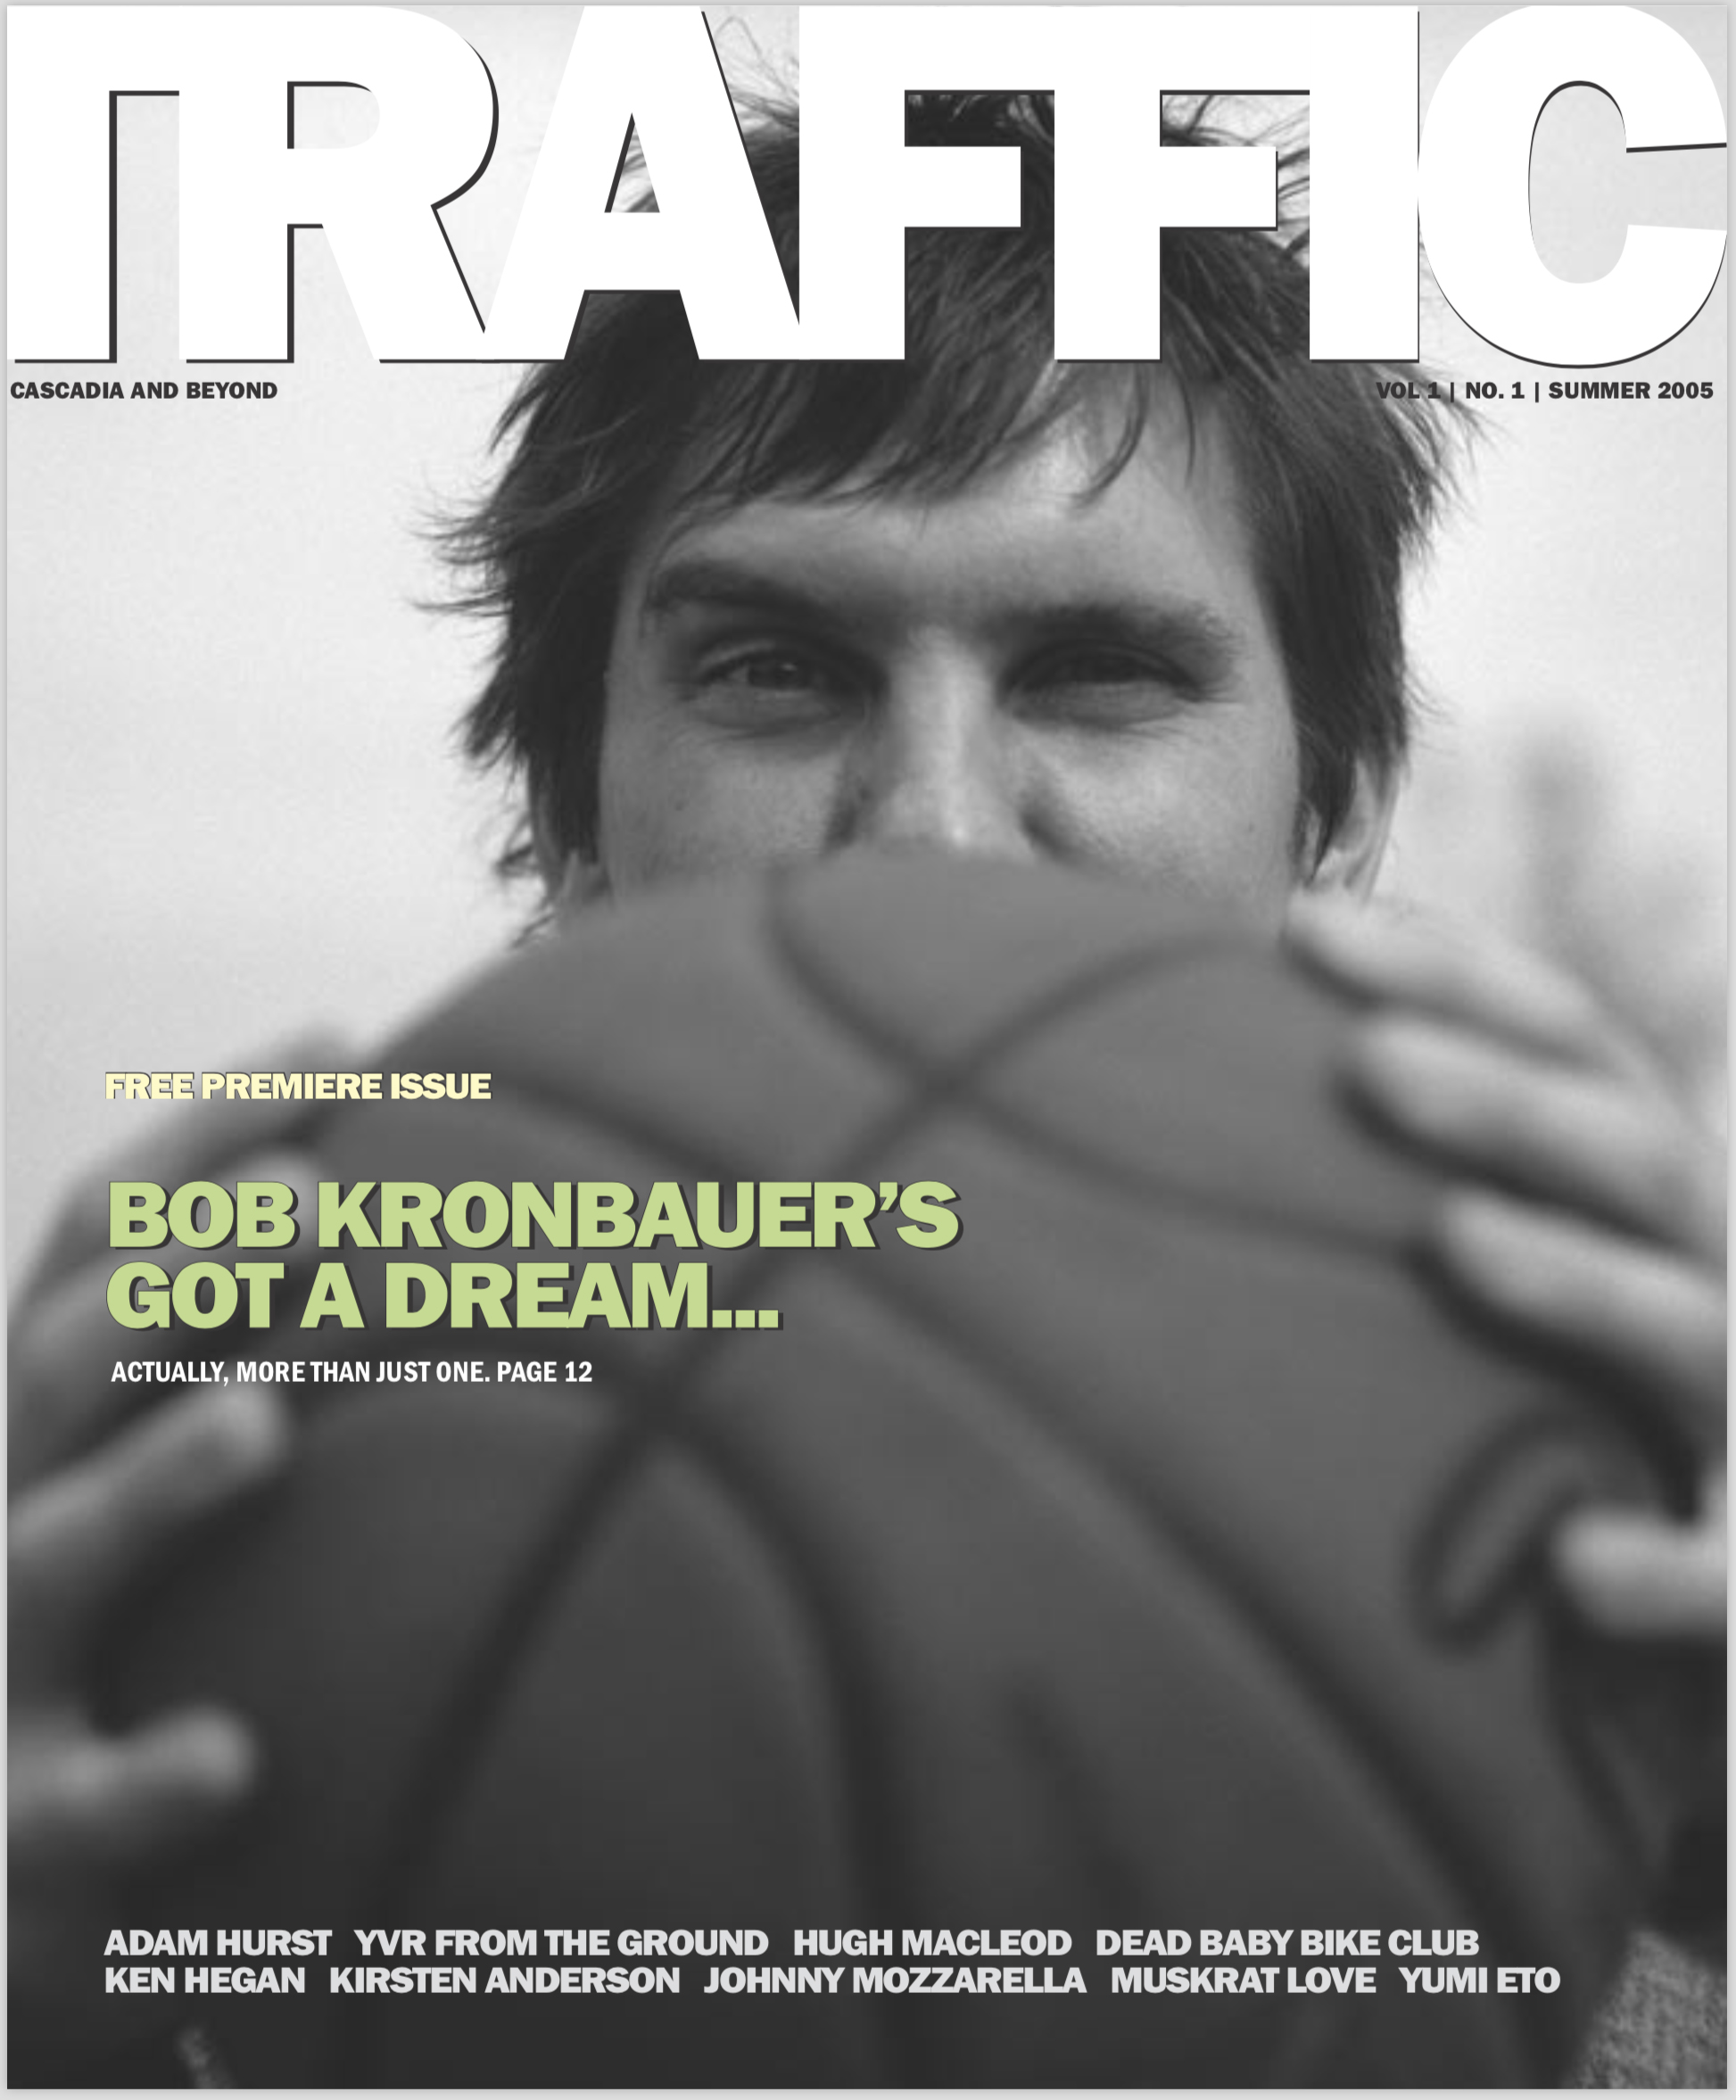 Traffic Magazine Vol.1No.1 - Summer 2005.jpg